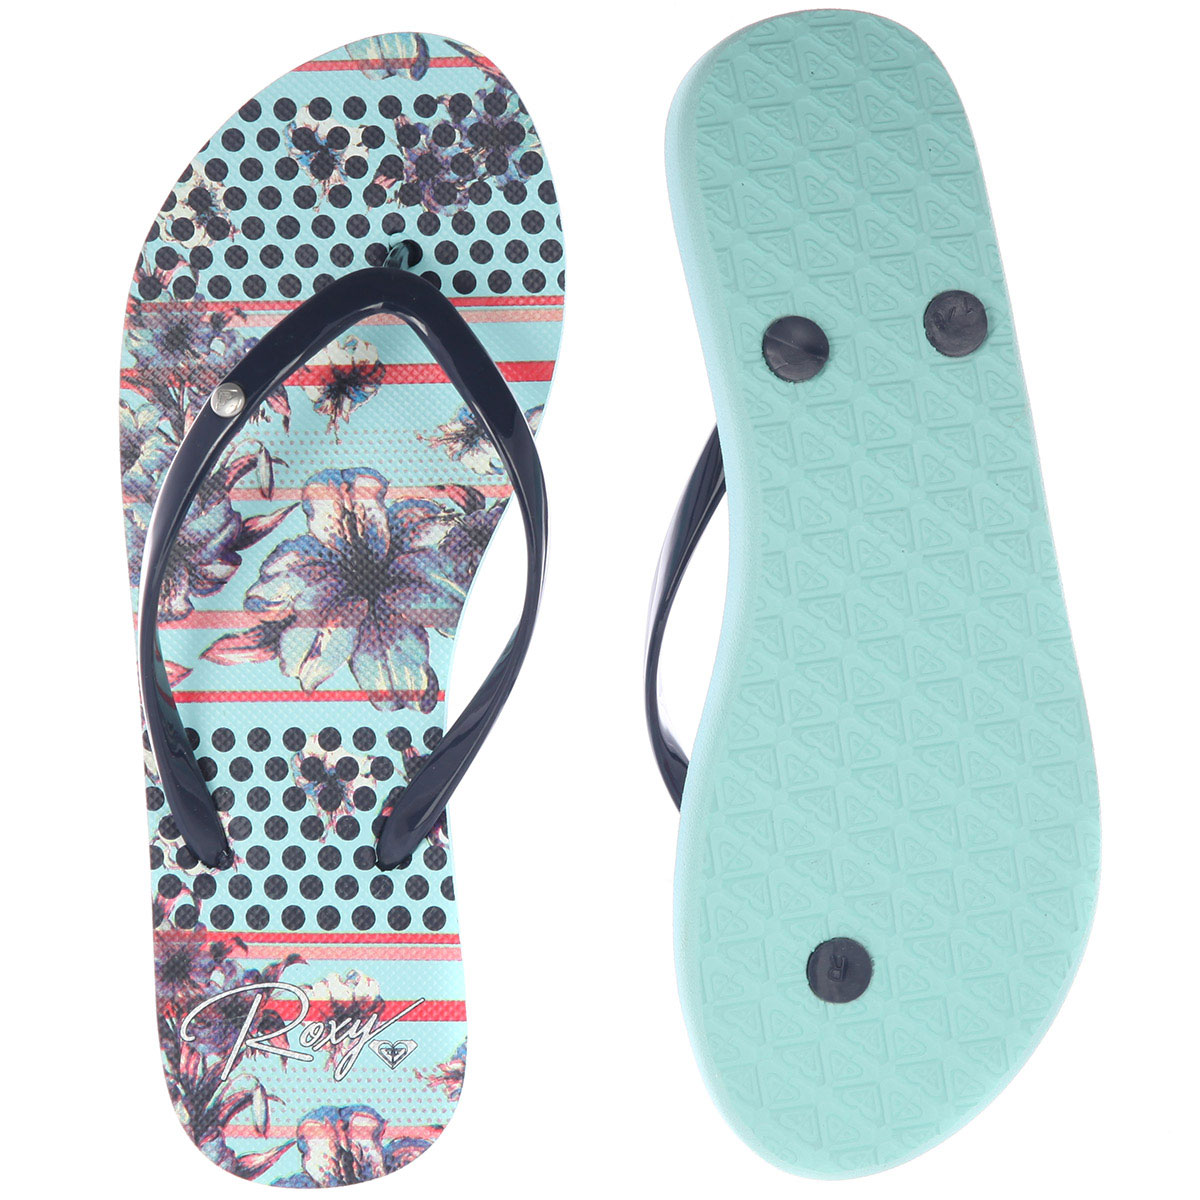 Сланцы женские ROXY Portofino light blue. Фото N2